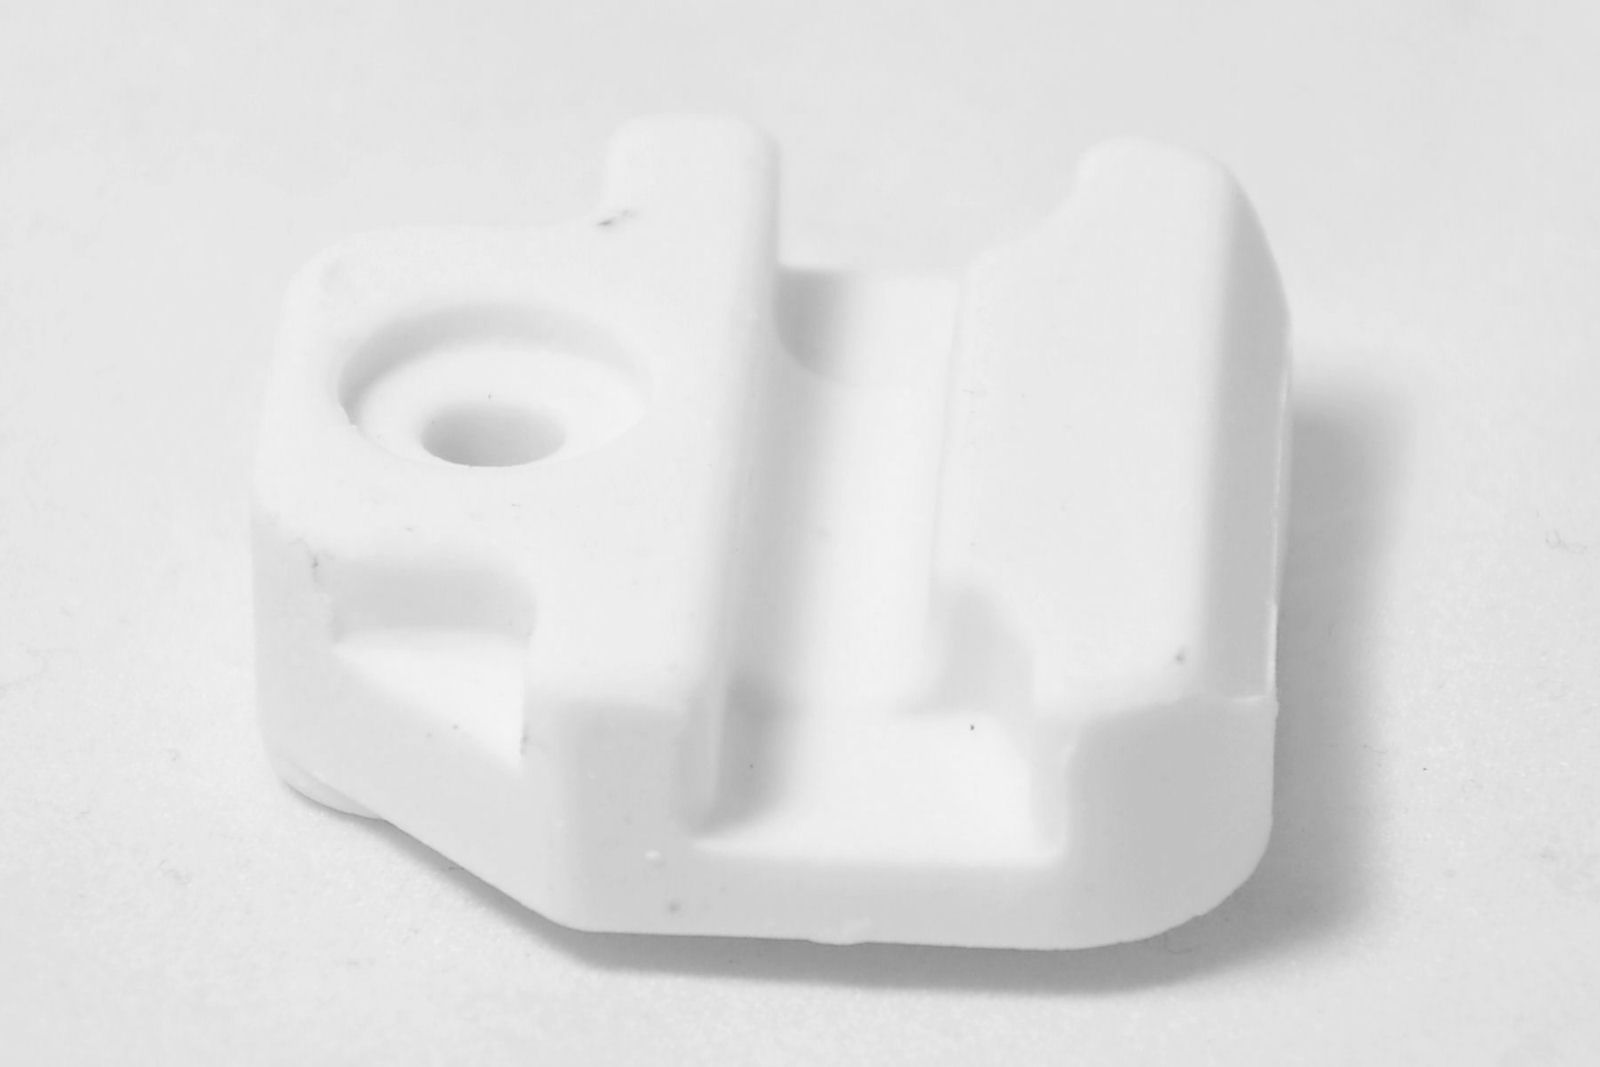 Ceramic Heater Support For Panasonic Bread Makers